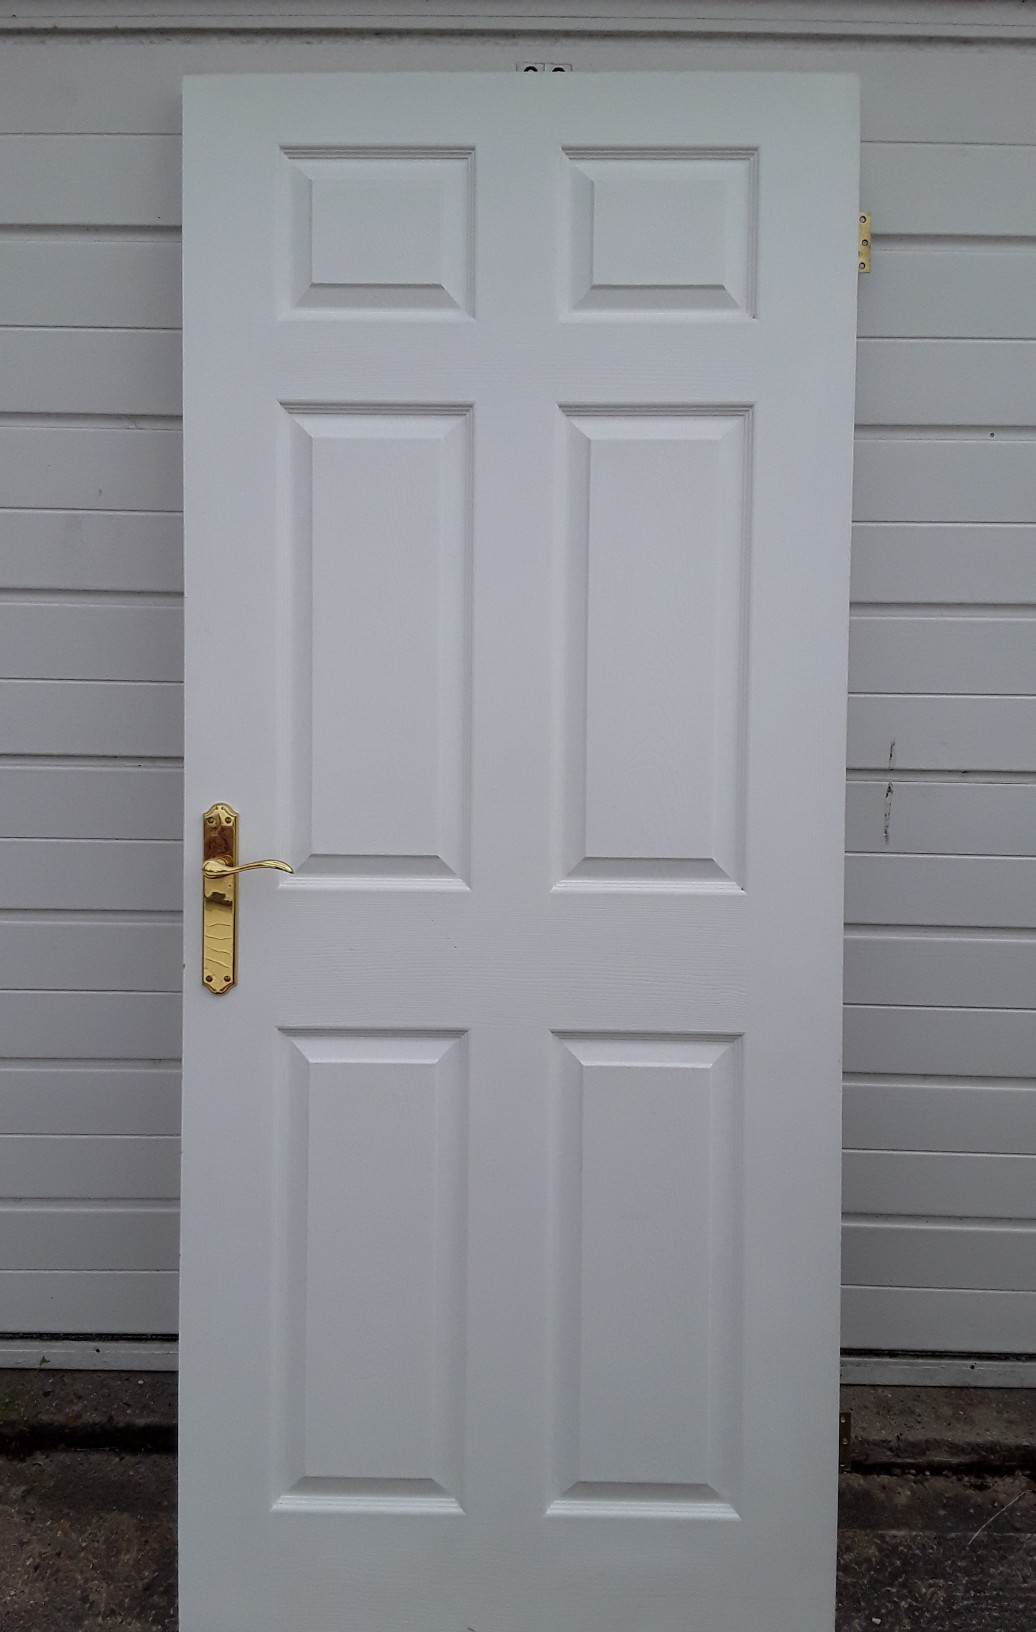 Interior 6 panel wood grain effect white panel doors x3 (33  wide x 78  high) complete with constable polished handles latches u0026 hinges. & second hand interior doors - Home Improvements | Preloved